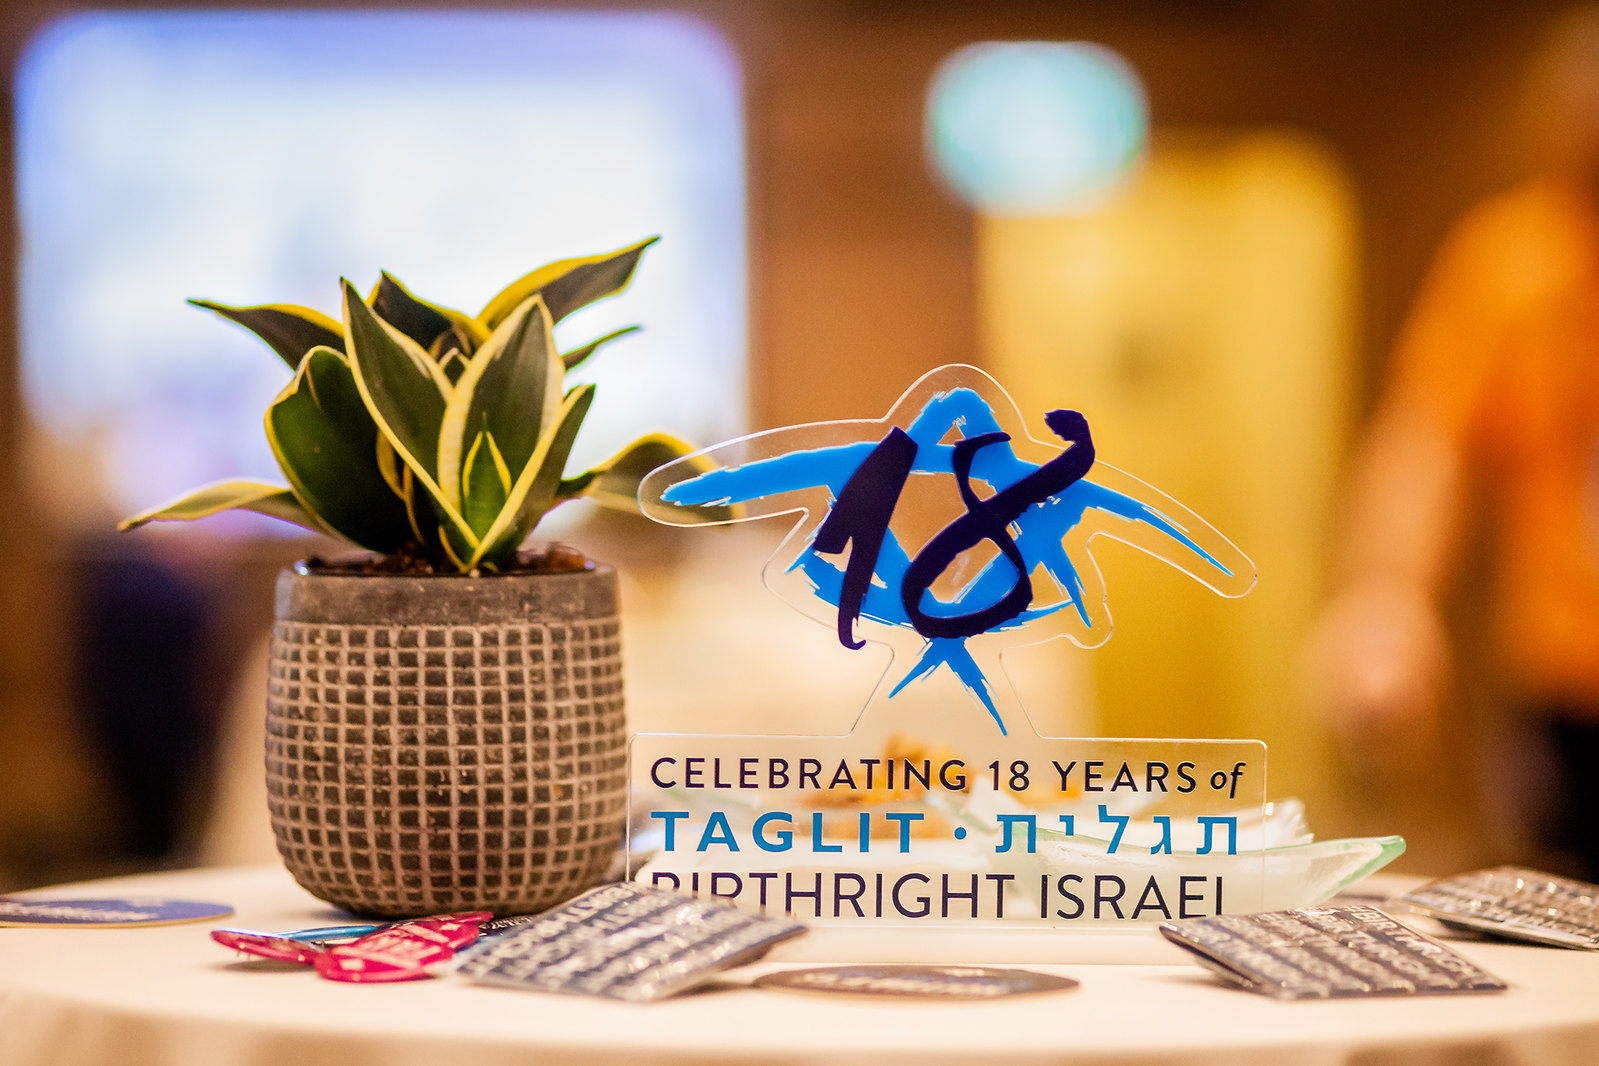 Birthright Israel at the 2018 GA